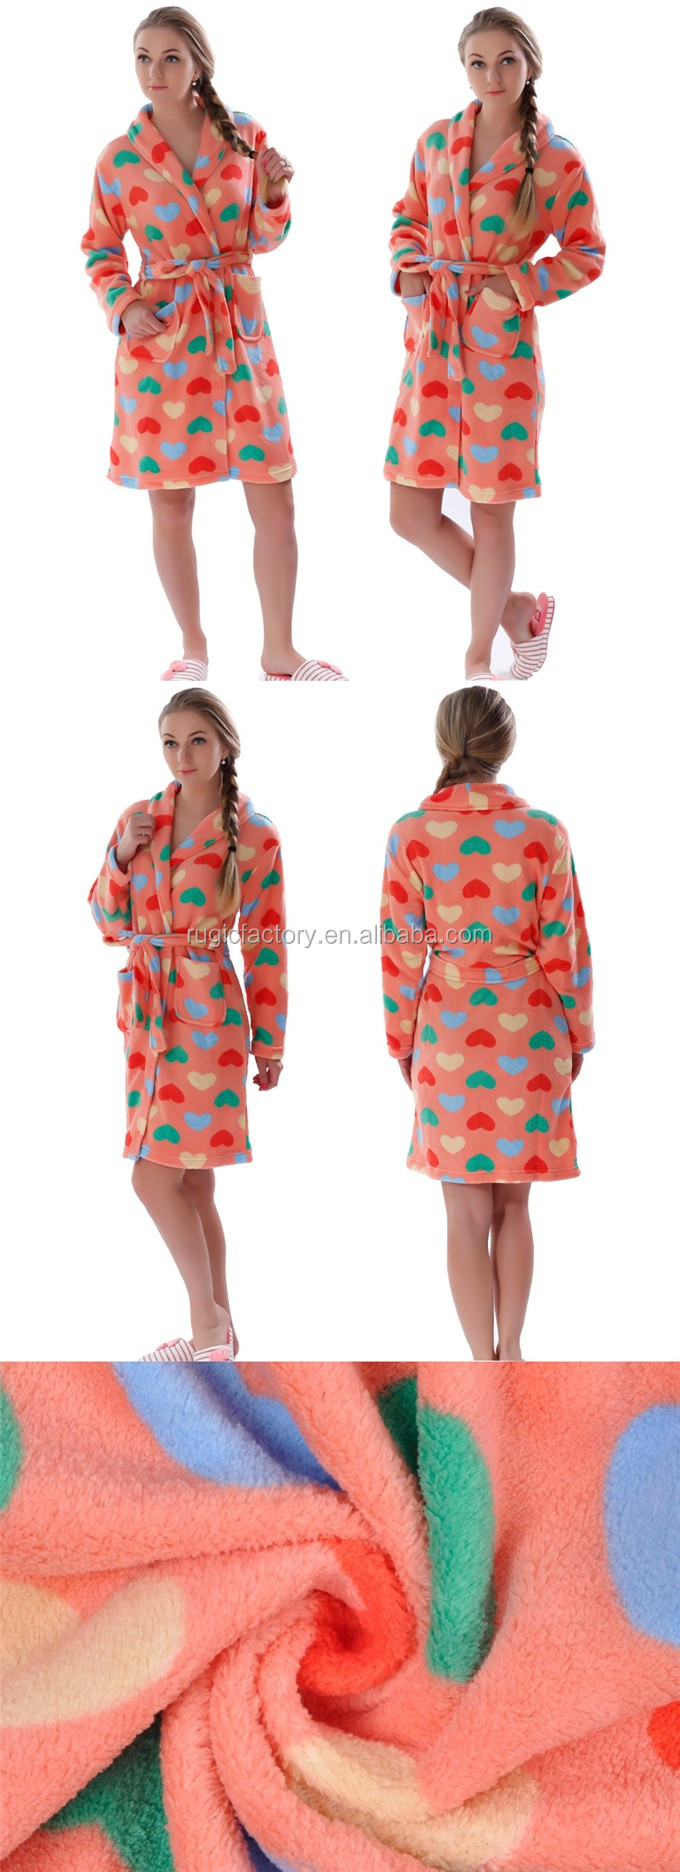 45f58509e5 Women Coral Fleece Warm Bathrobe Plus Size Adult Onesie Nightgown Kimono  Dressing Gown Sleepwear Pajamas for